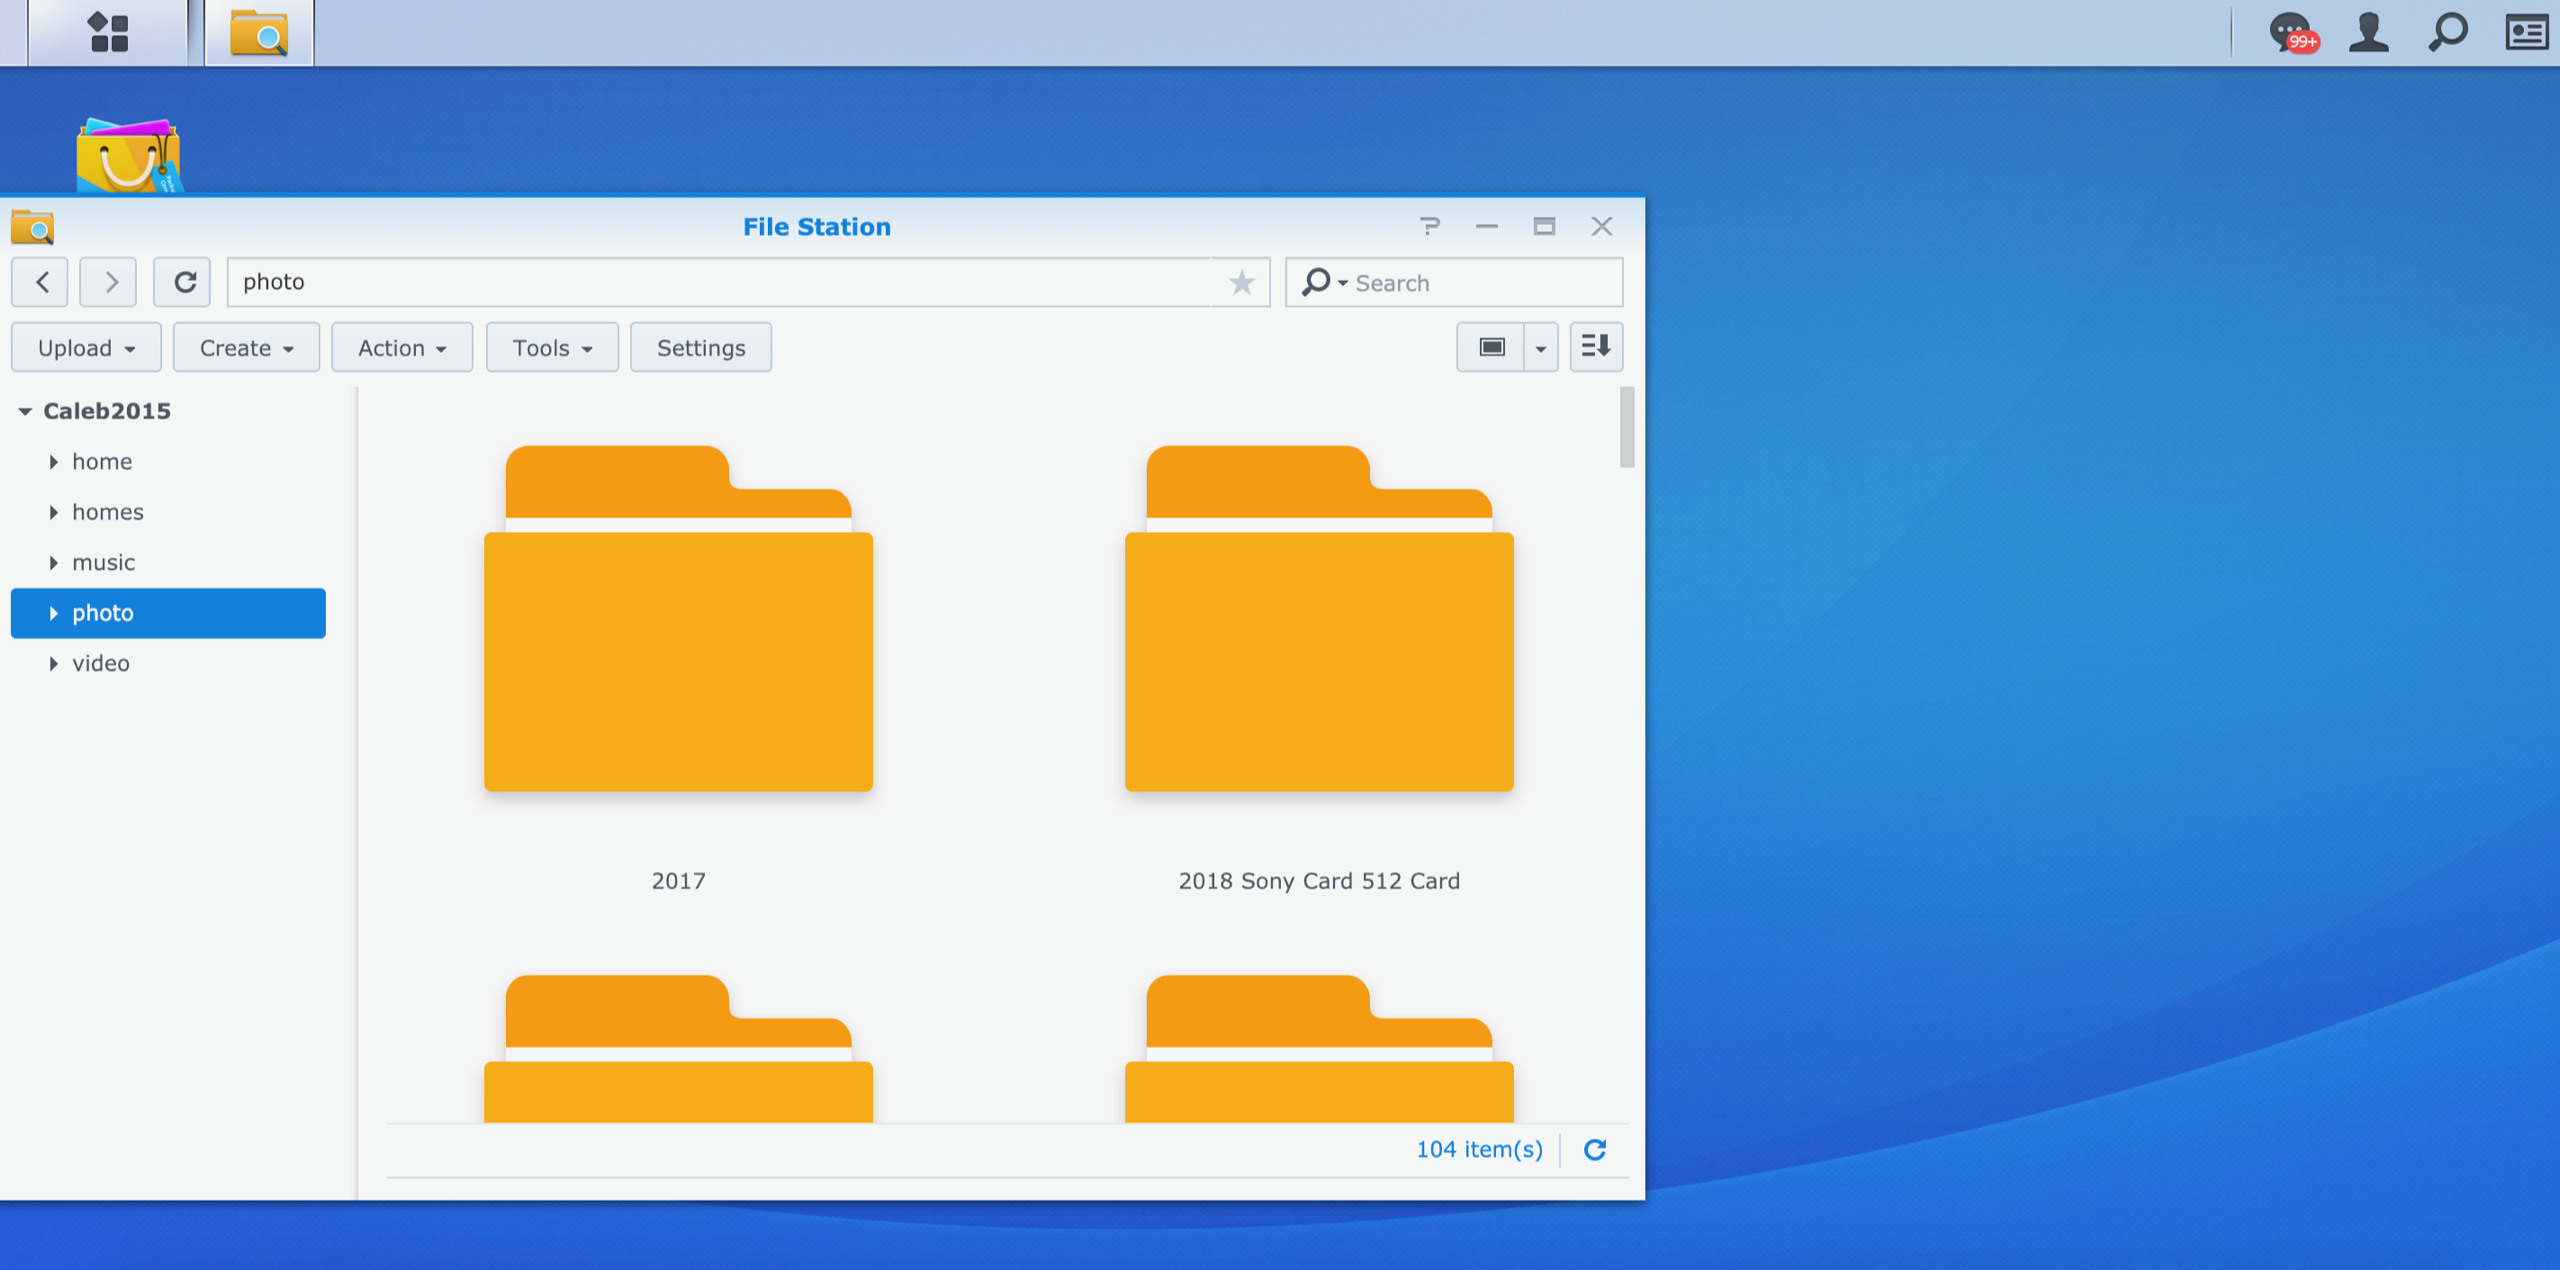 synology ds918 ease of use 1 image